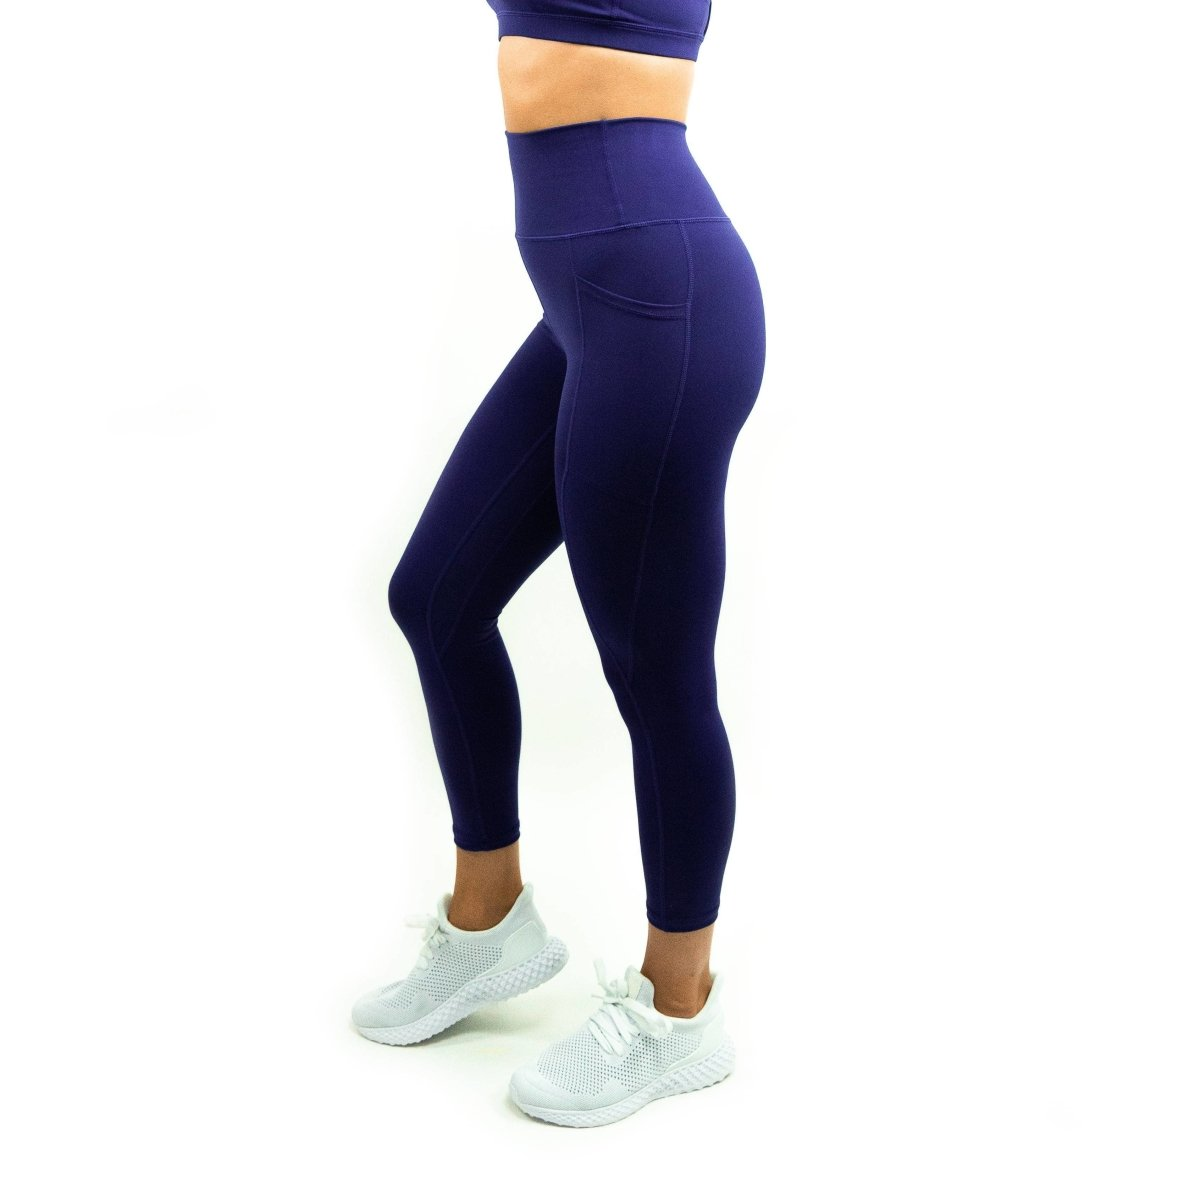 Pocket Leggings in Blueprint - Southern Athletica